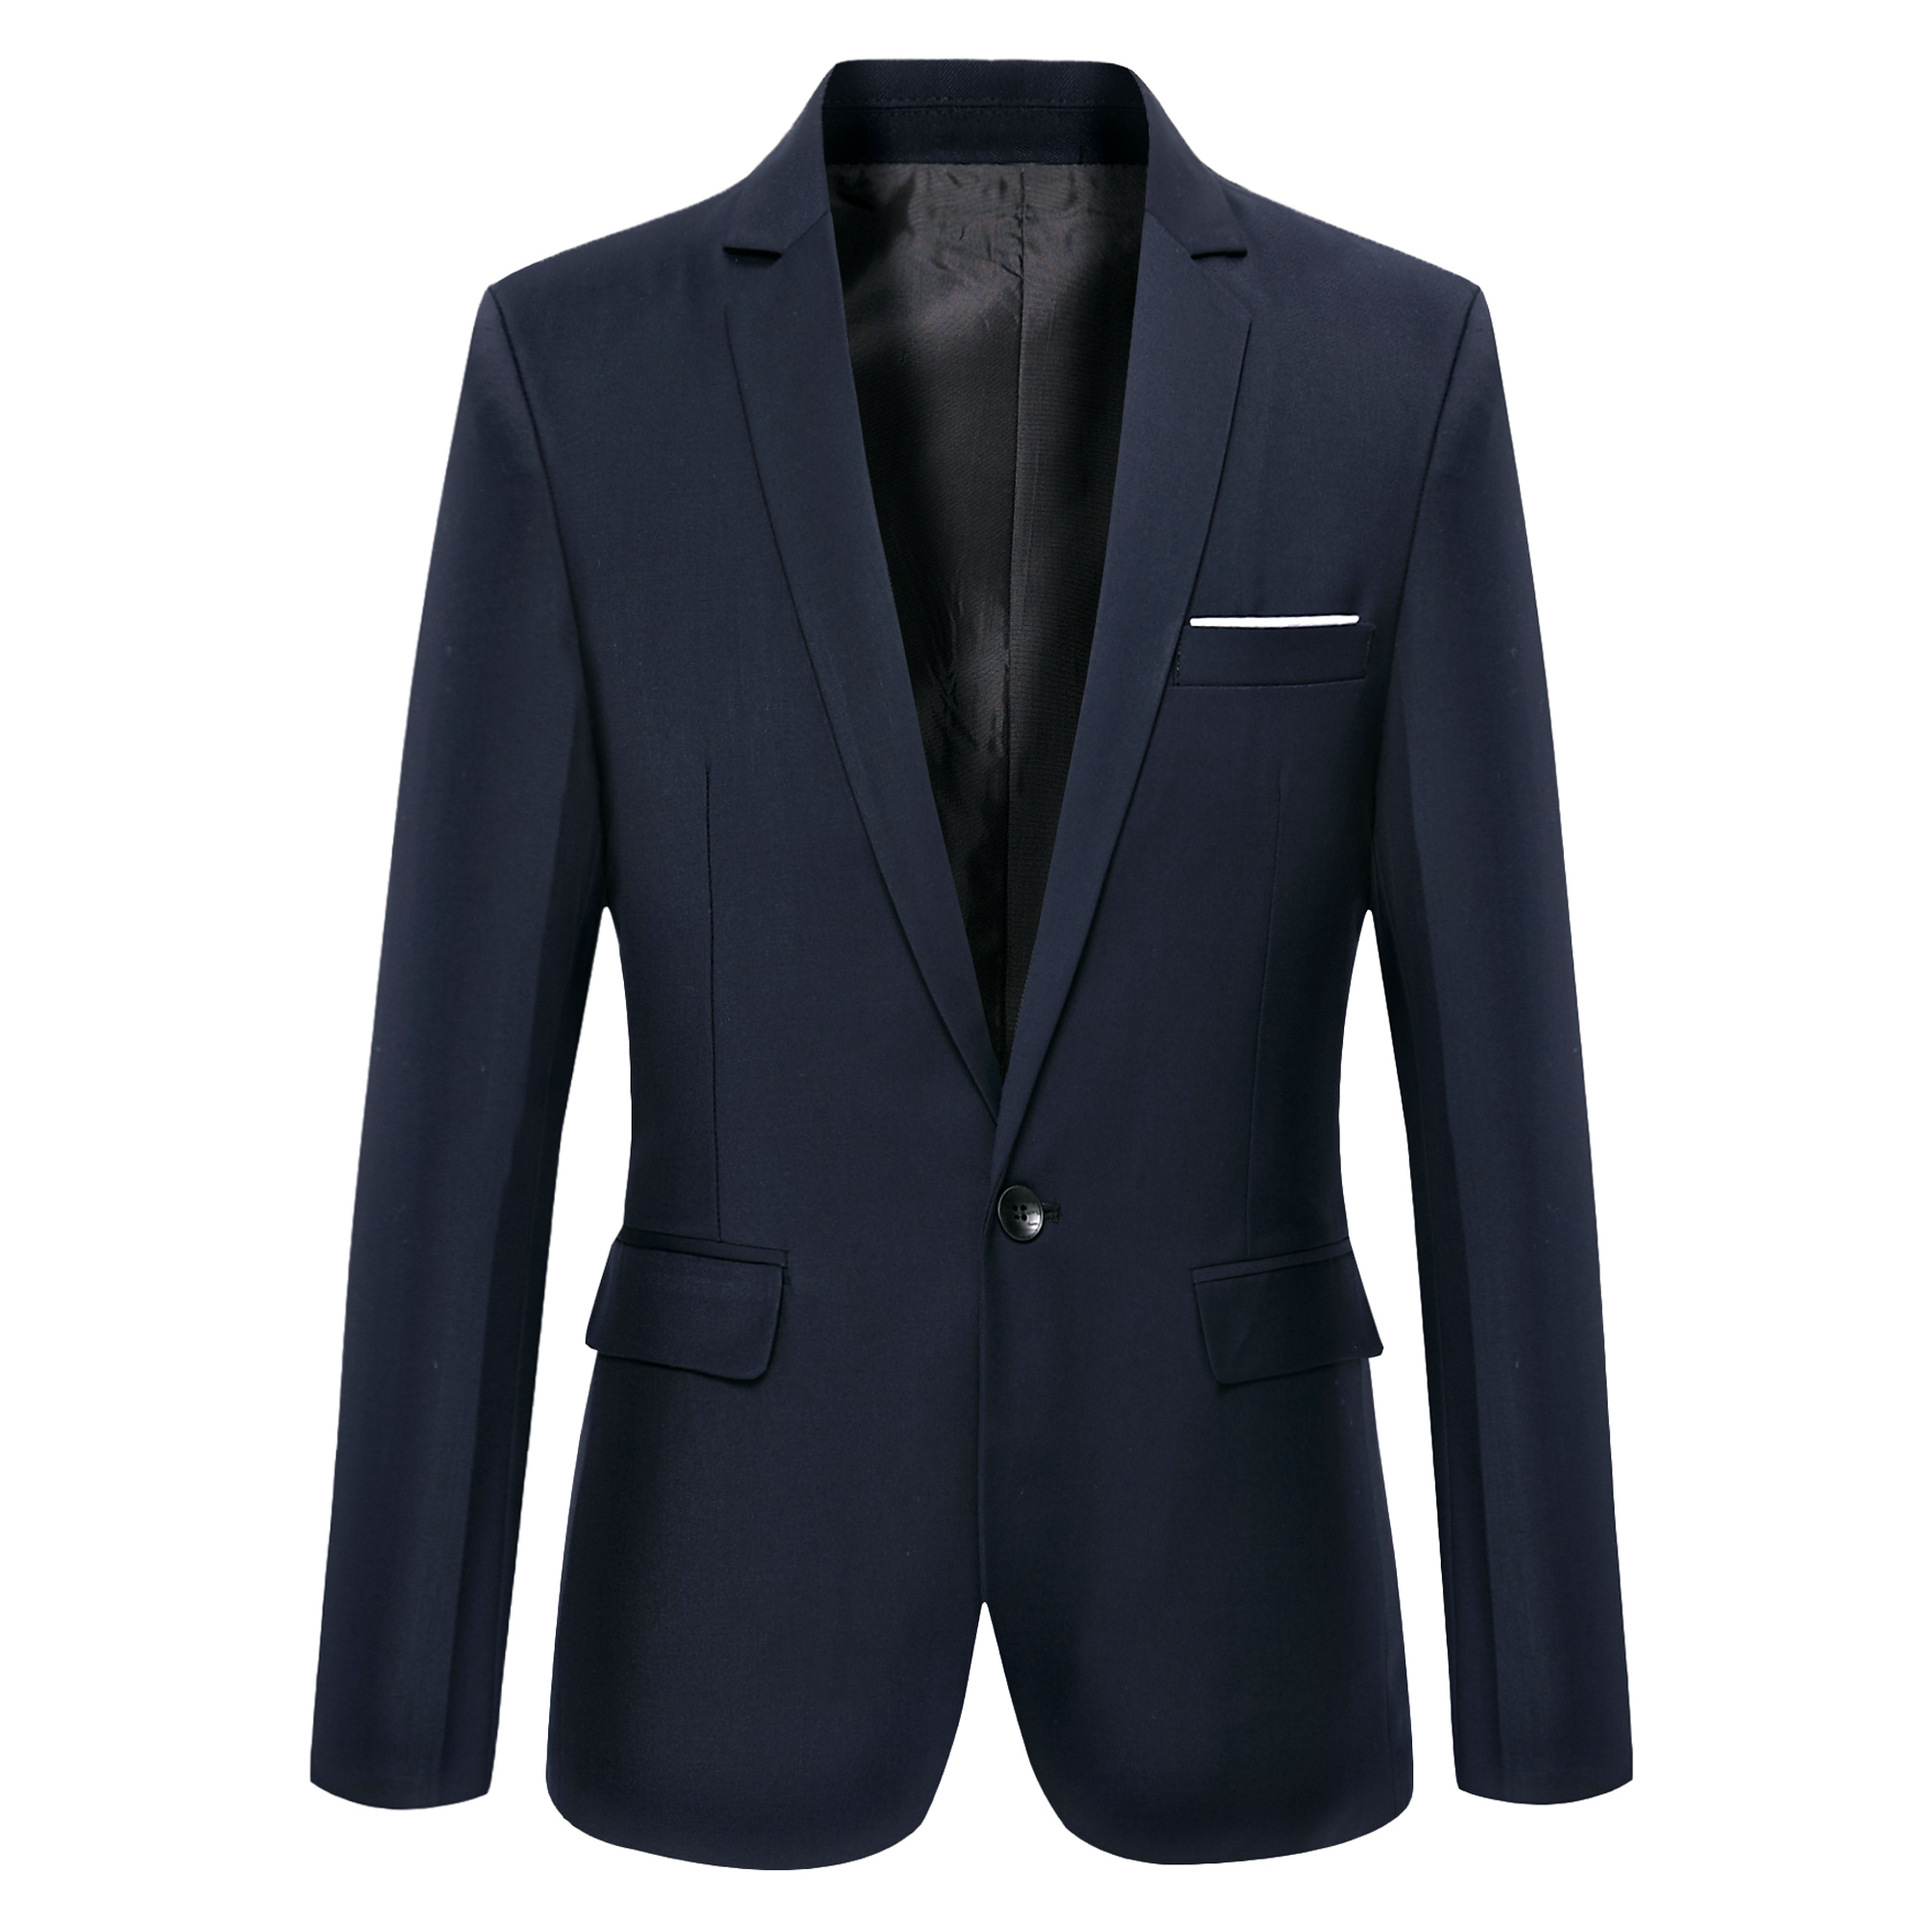 2019 Brand Clothing Autumn Suit Blazer Men Fashion Slim Fit Male Suits Casual Solid Color Masculine Blazer Size M 4XL in Blazers from Men 39 s Clothing